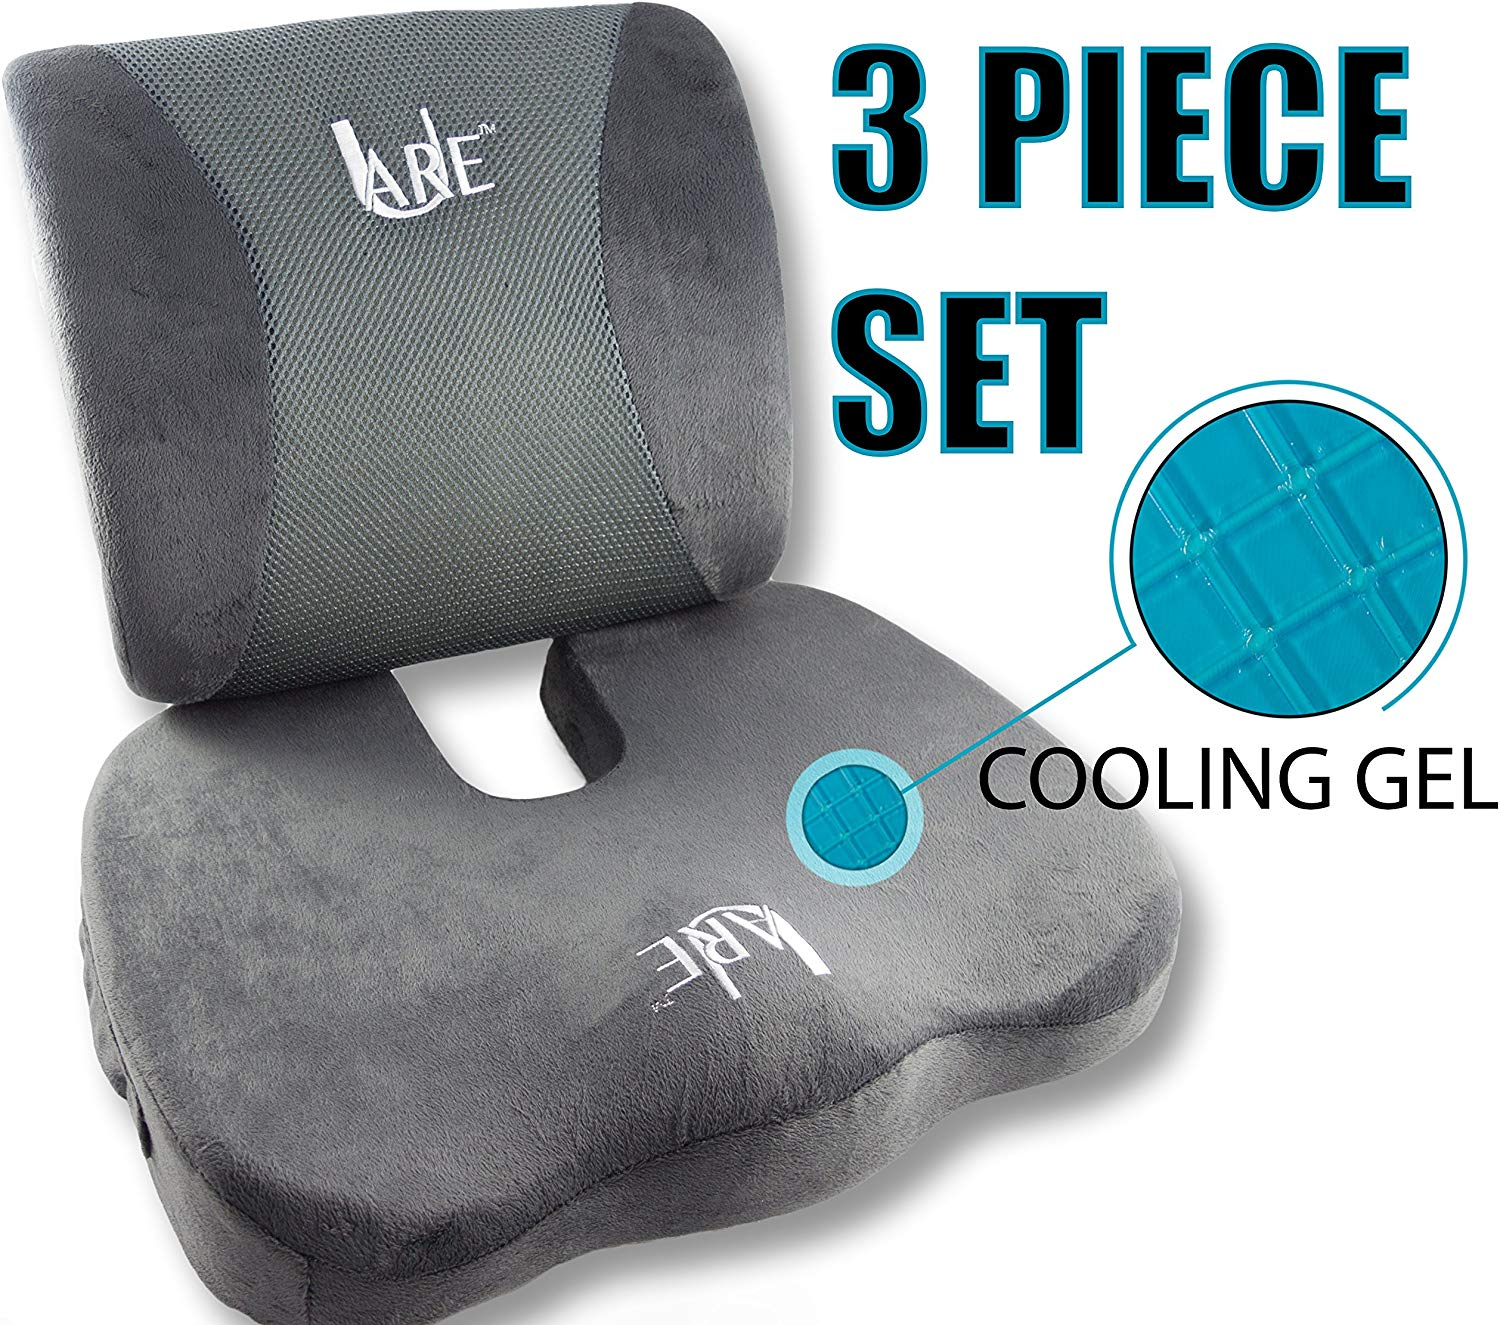 SET: Cool Gel Memory Foam Seat Cushion with Rain Cover and Lumbar Support Pillow for Office Chair and Car Seat Cushions - Ultimate Comfort Set Relieves Back Pain, Tail Bone Pain, Sciatica Seat Cushion